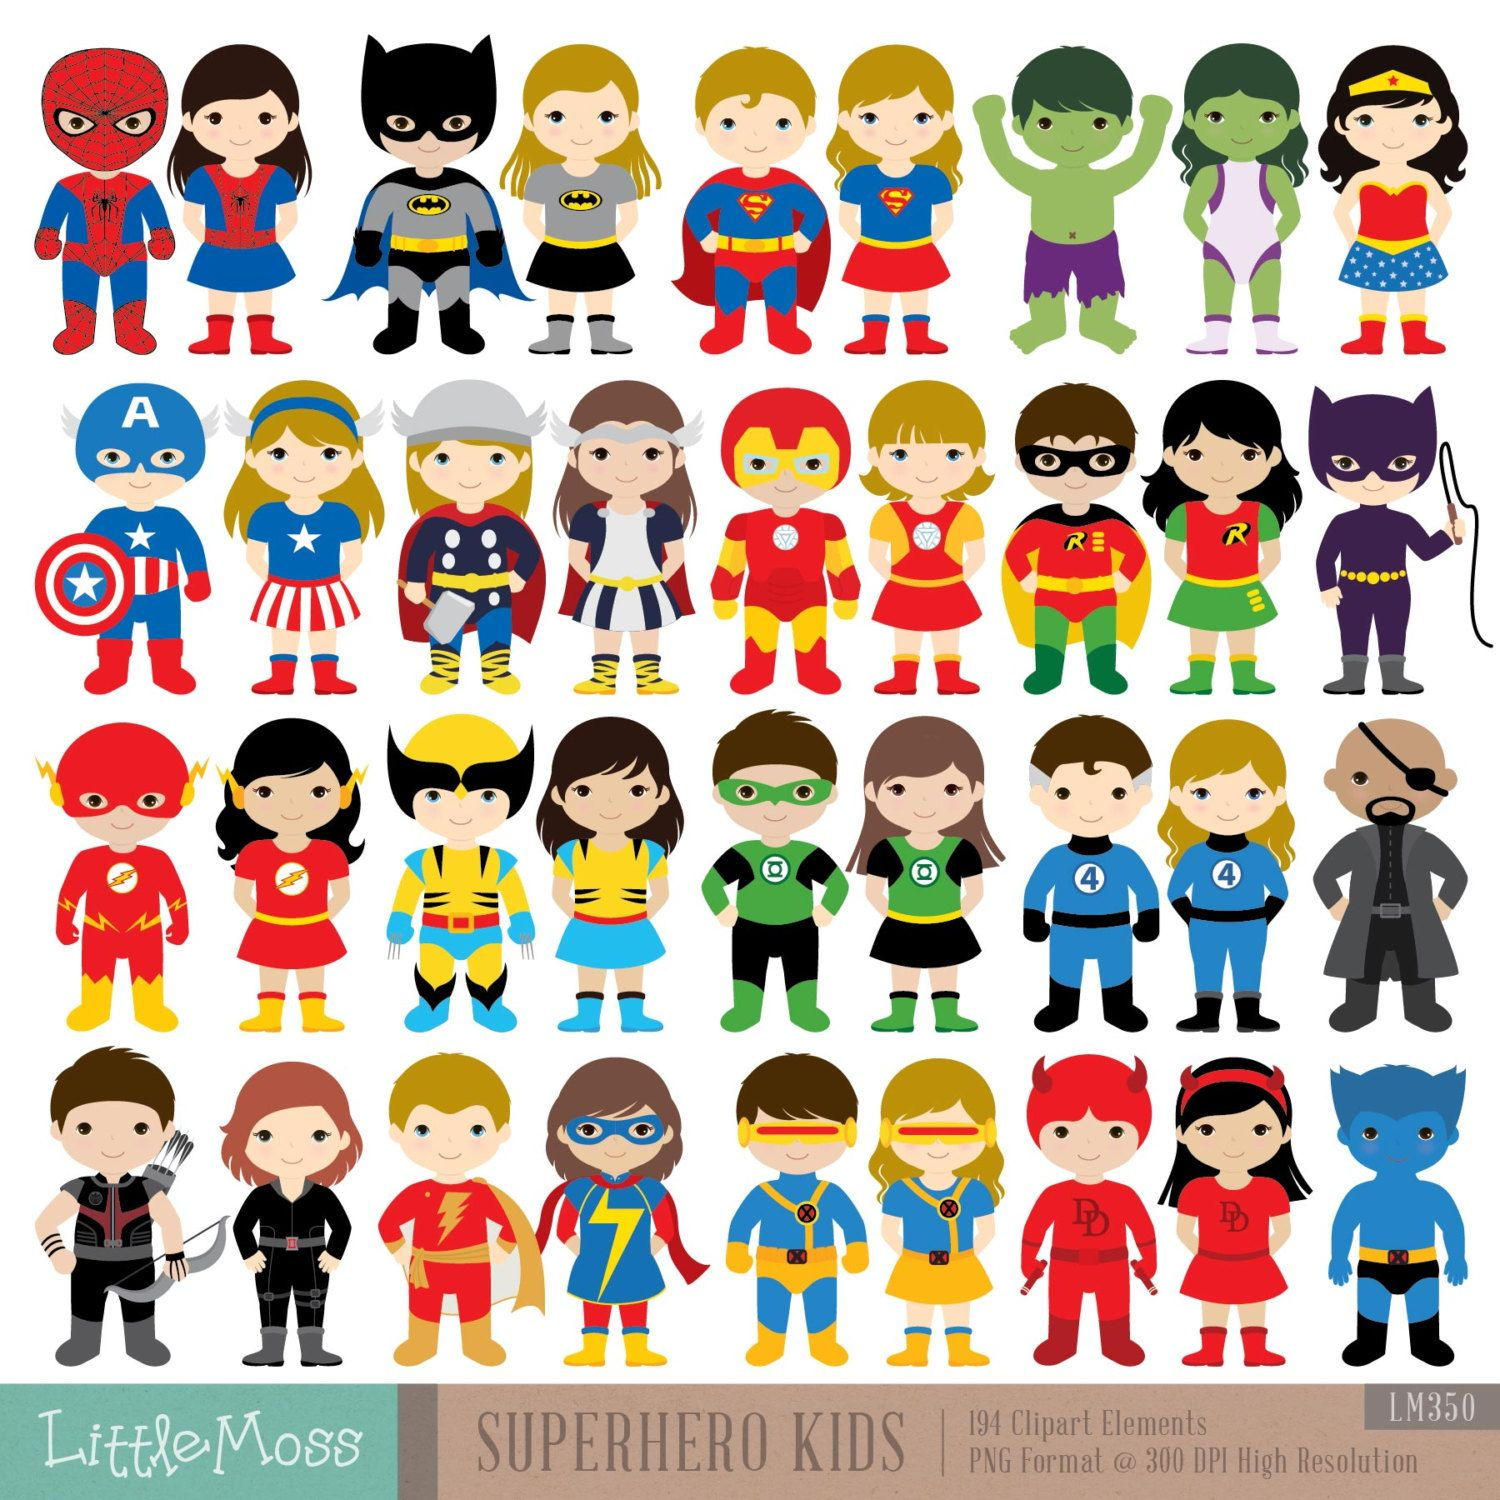 kids costumes superheroes. Costume clipart superhero outfit